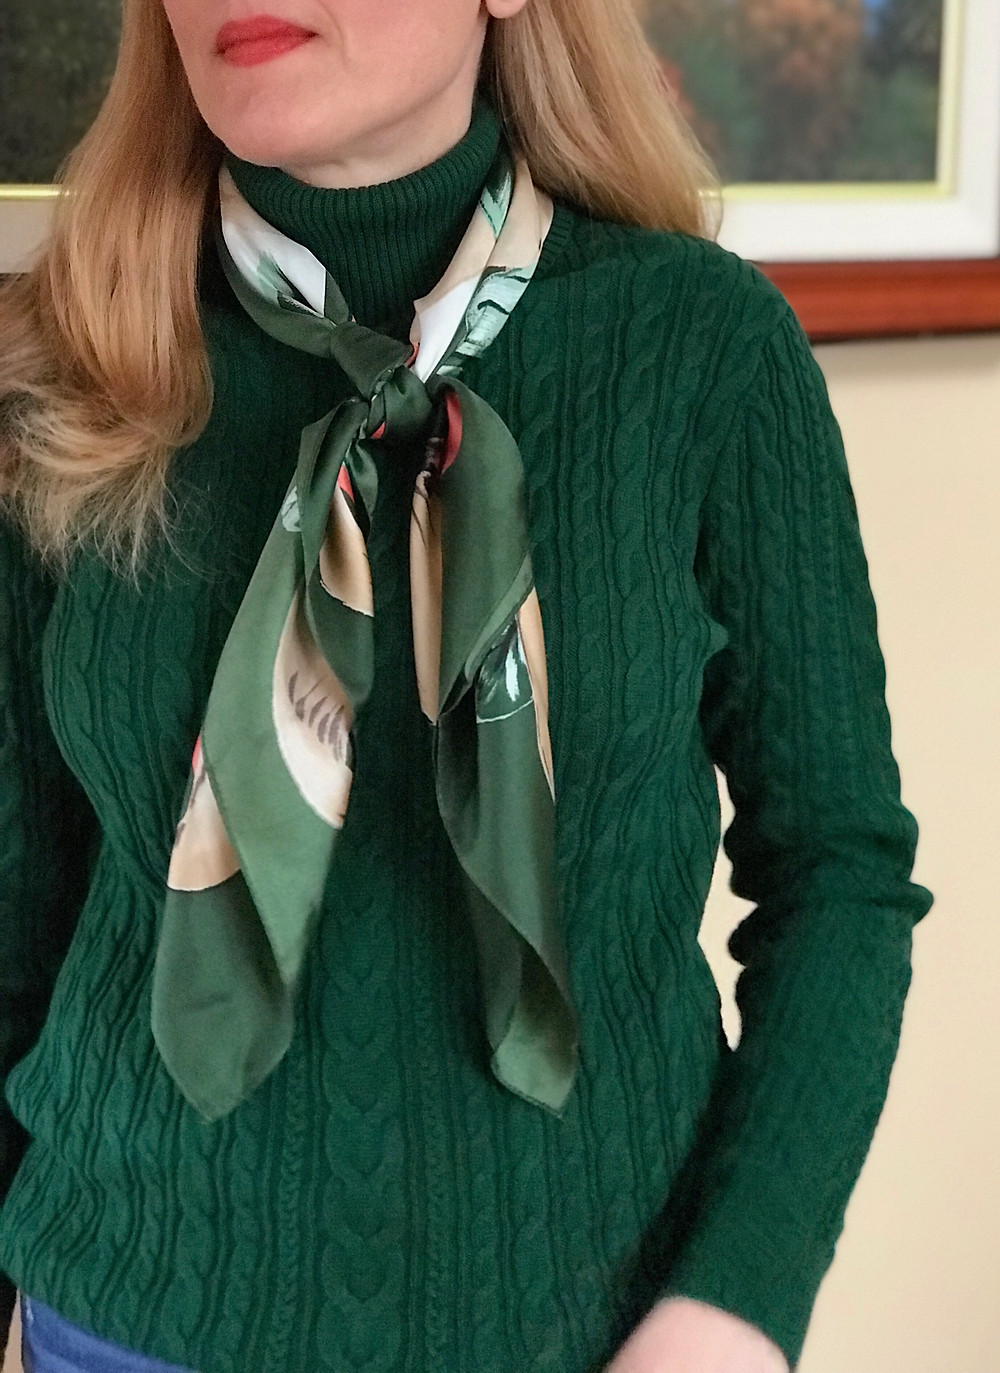 blond woman in a green turtleneck sweater with silk scarf